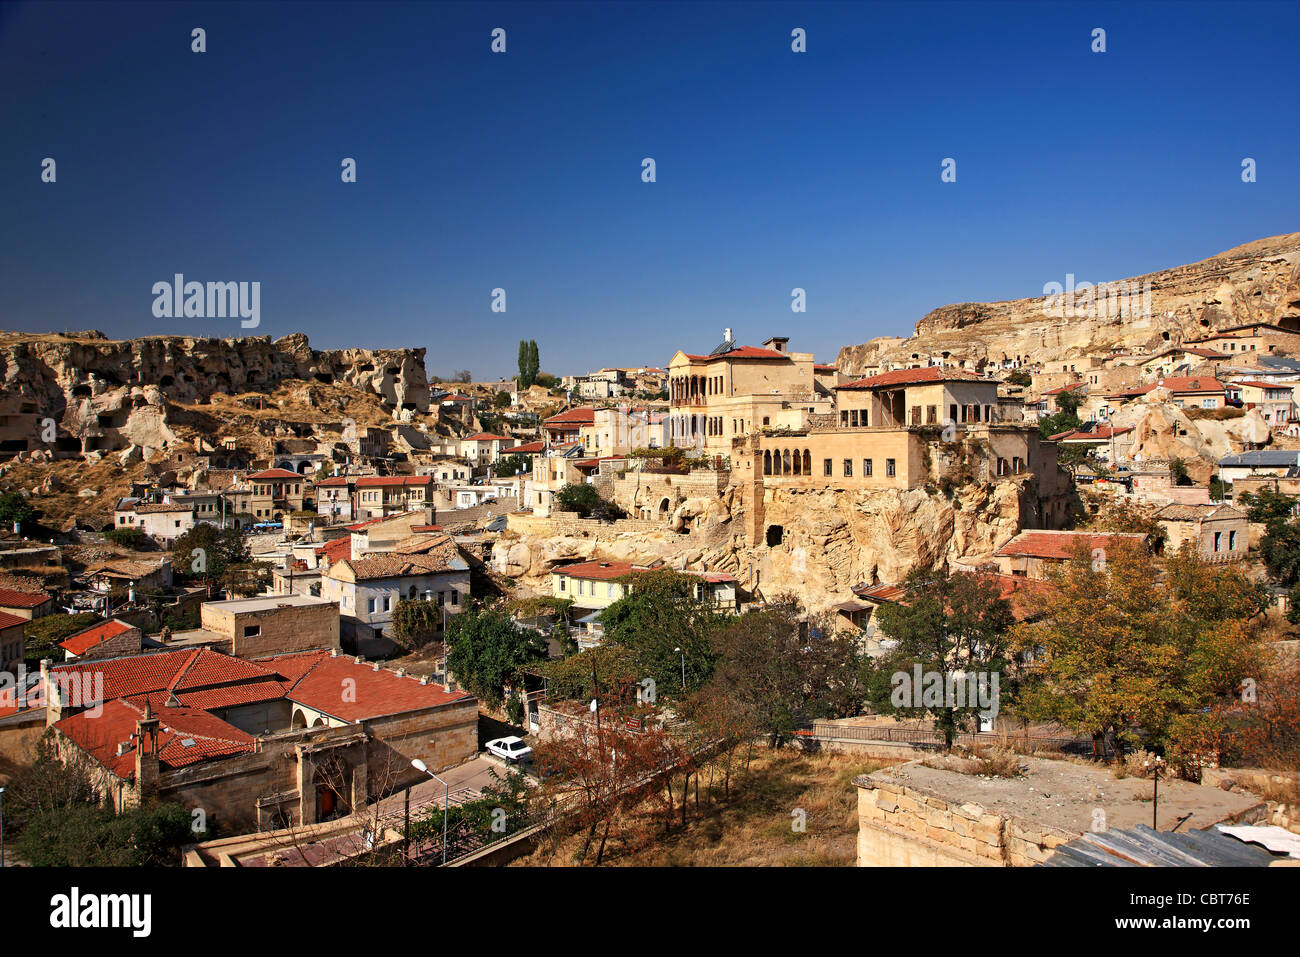 Photo from Urgup town, where you can see some old Greek housesNevsehir, Cappadocia, Turkey. - Stock Image